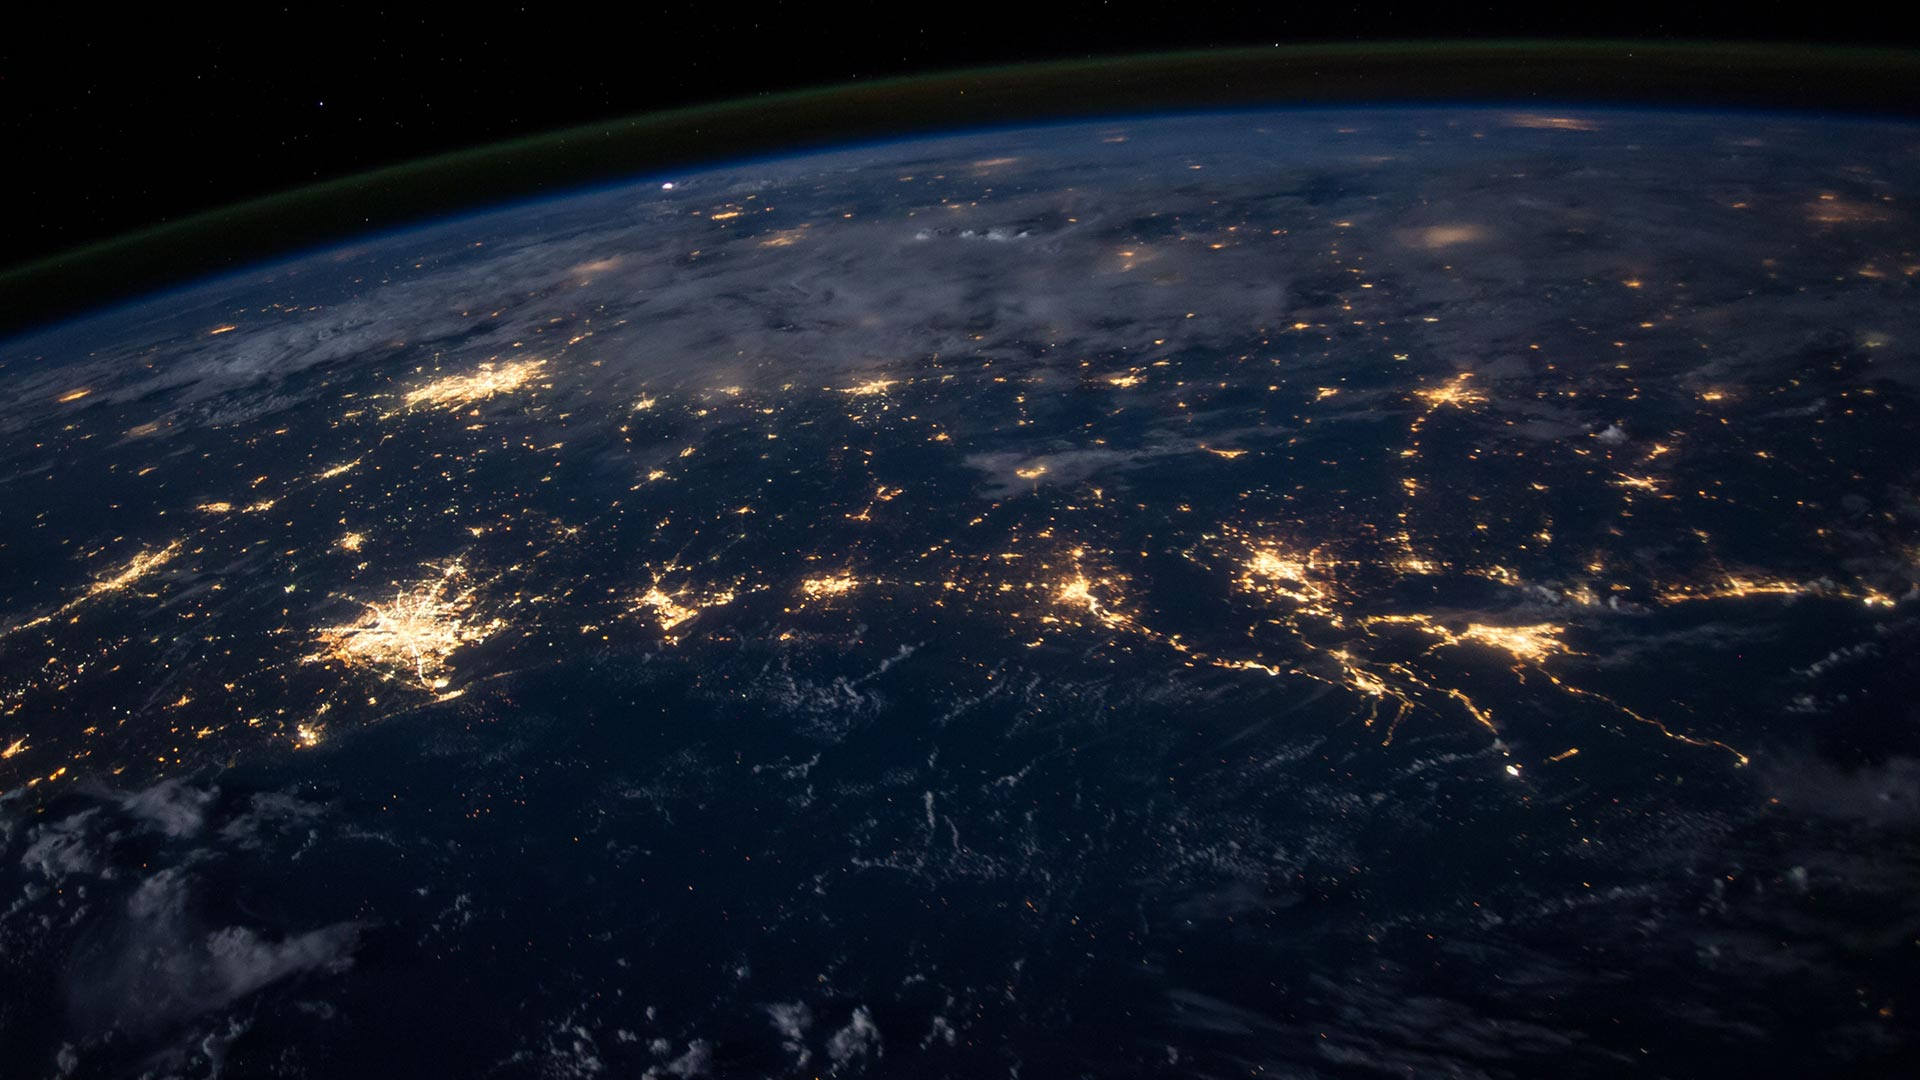 A night time view of lit up cities on Earth from space